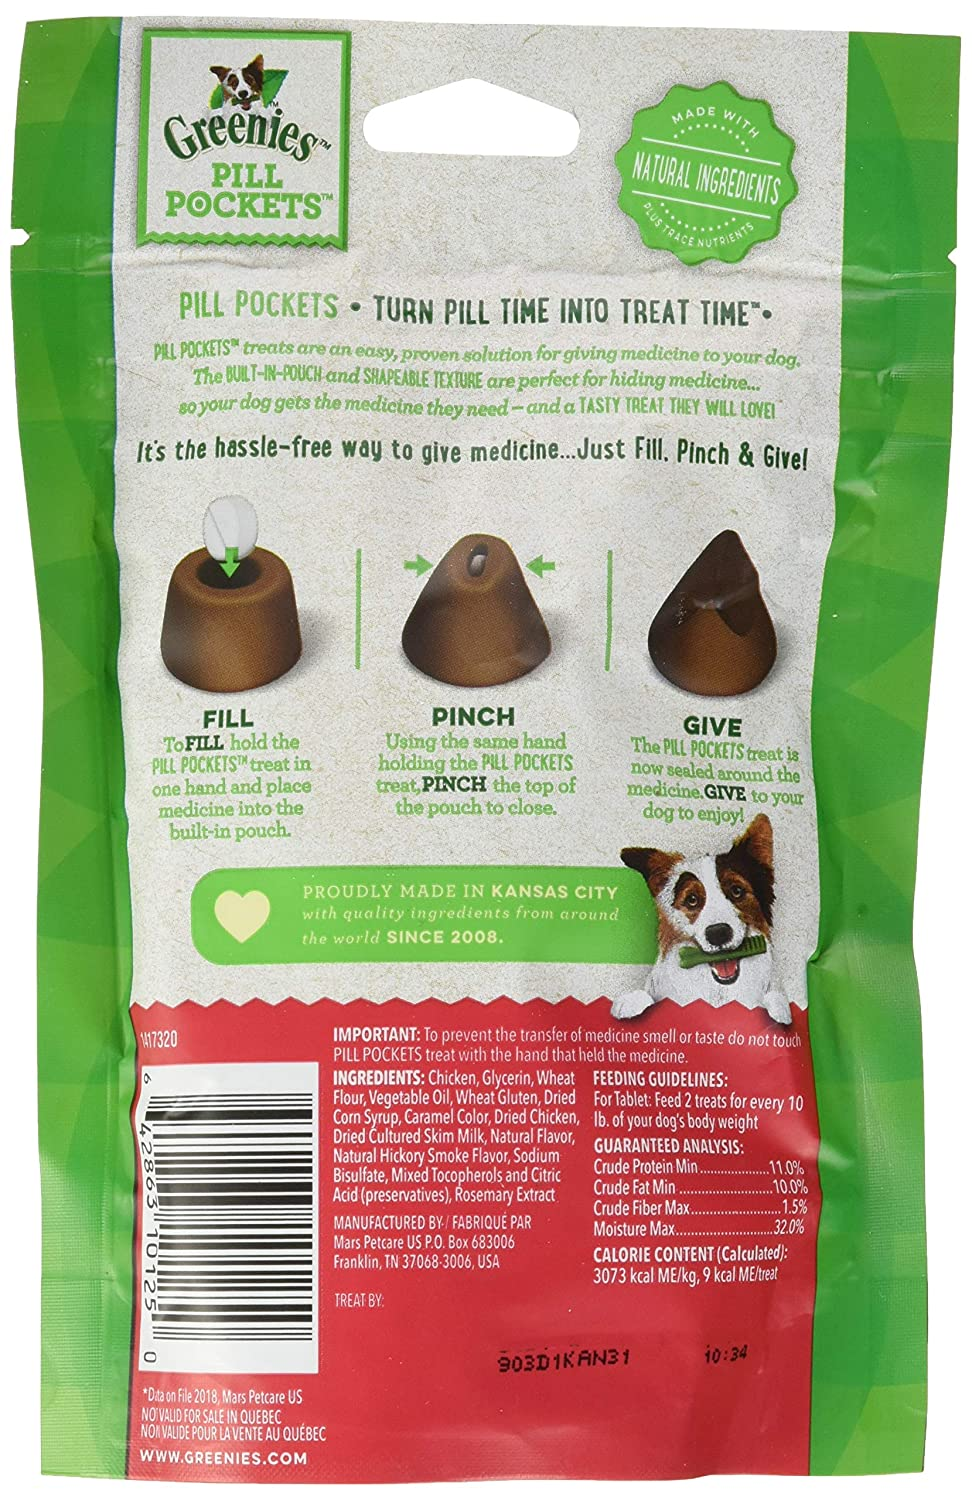 Greenies Pill Pockets Tablet Variety Bundle 6-Pack 6 Bags Total – 2 of each flavor